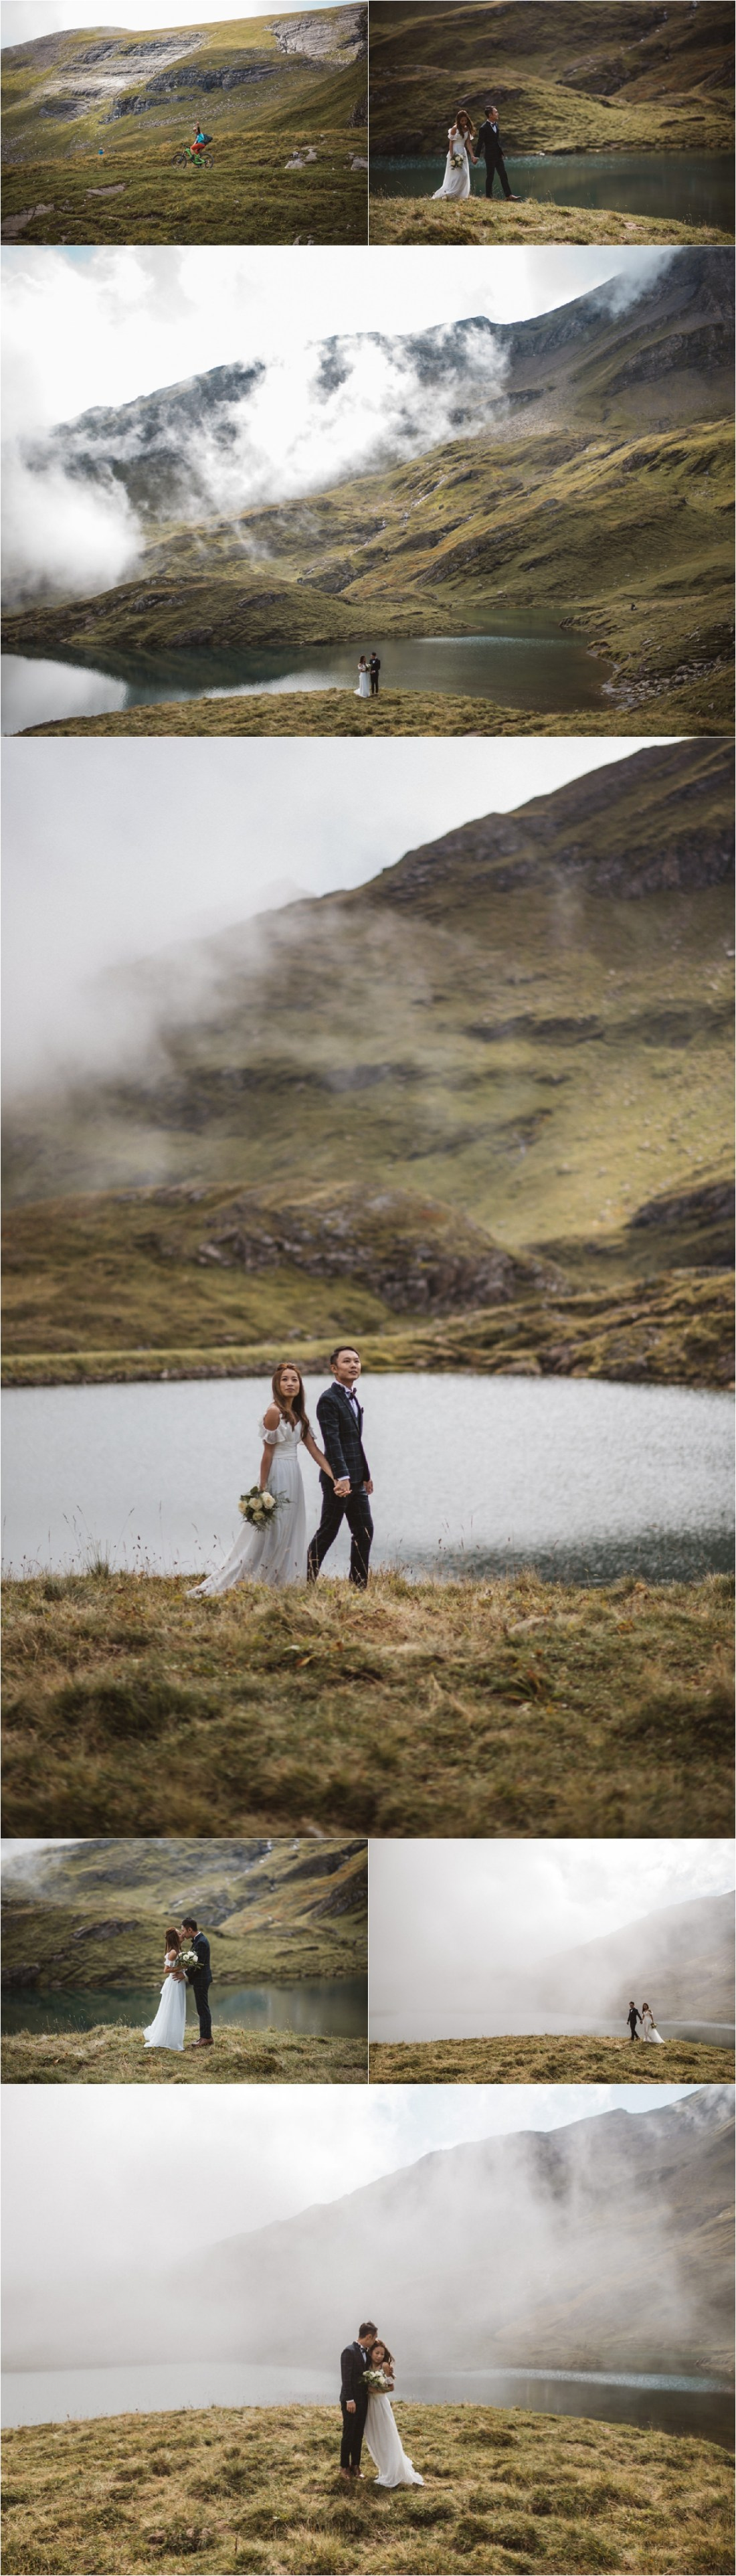 Bride and groom walk along a lake in the Swiss Alps by KatjaSimon Photography